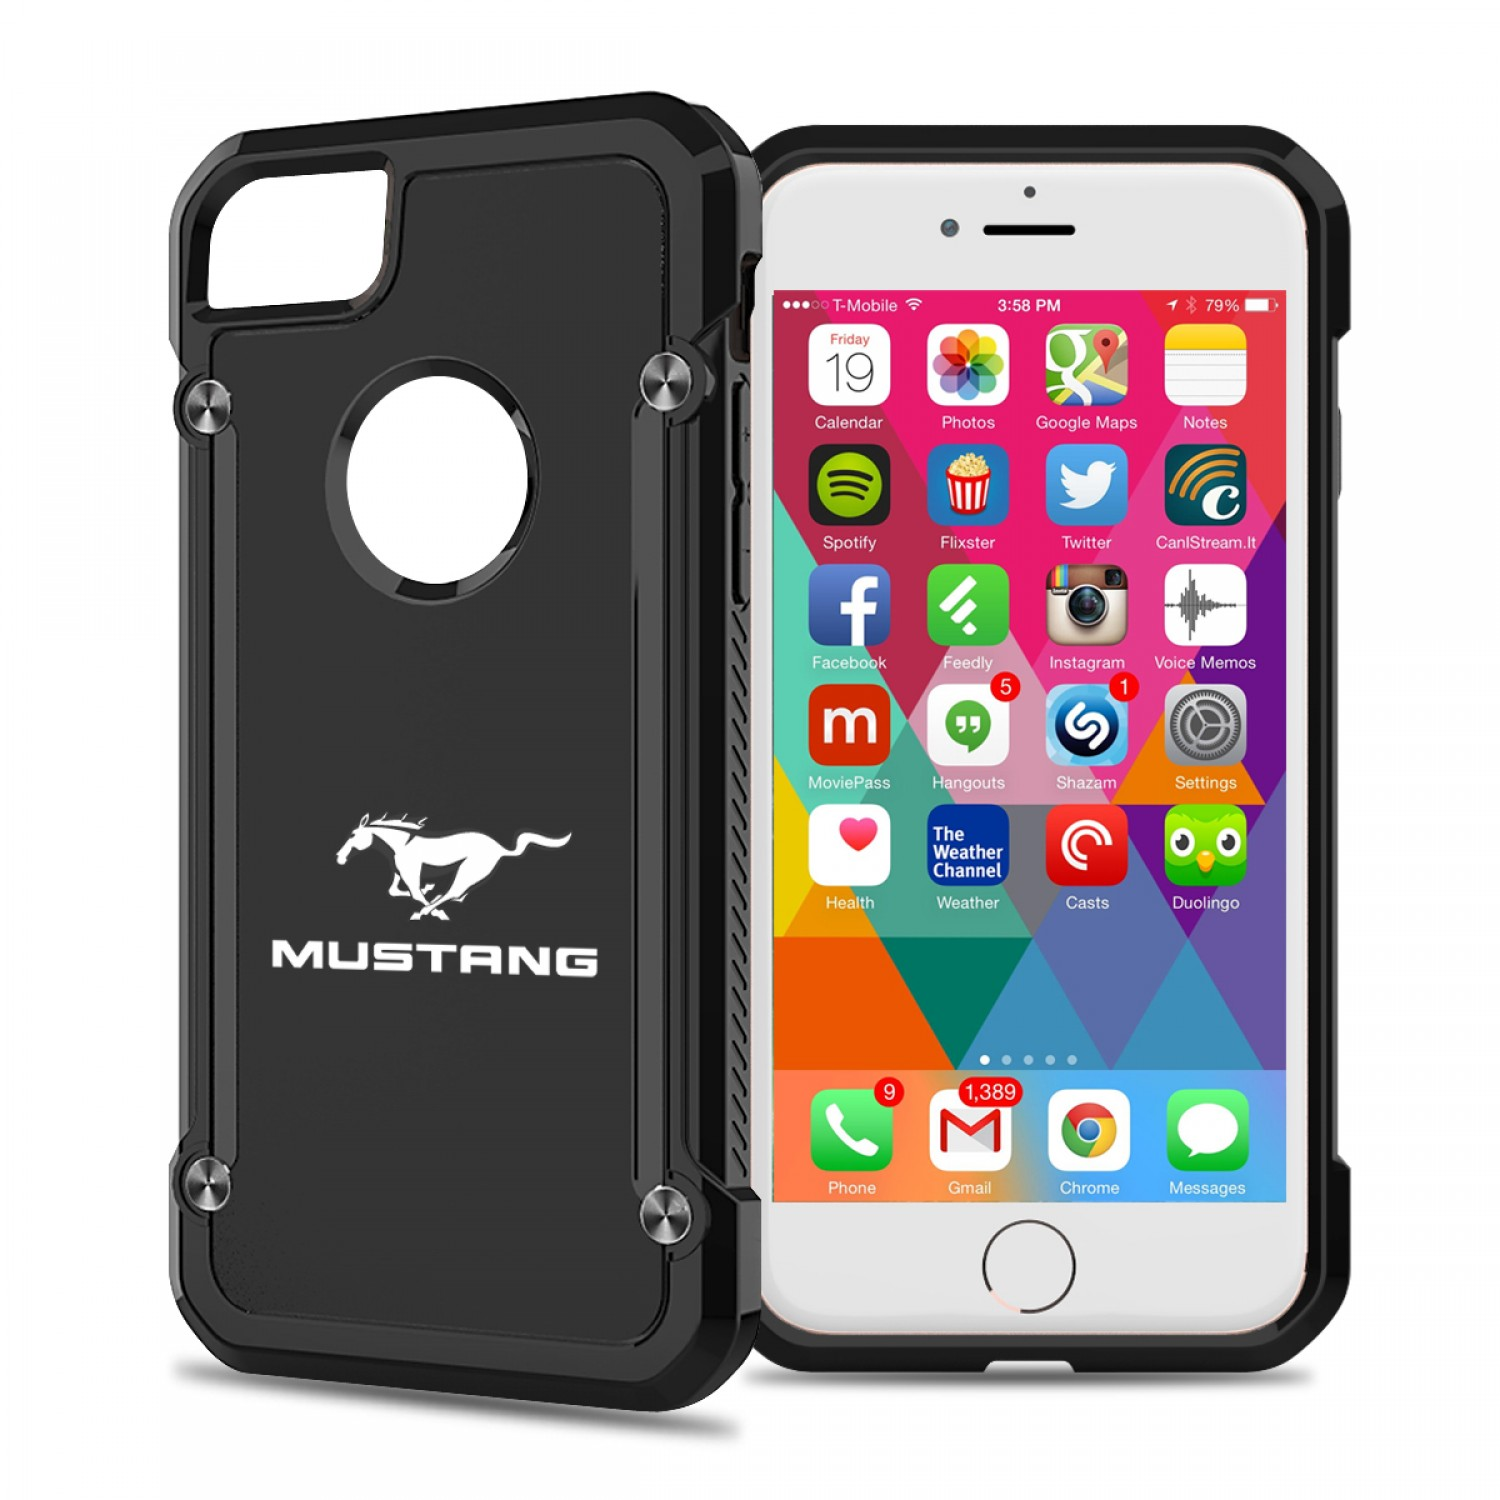 Ford mustang iphone 7 iphone 8 tpu shockproof clear cell phone case